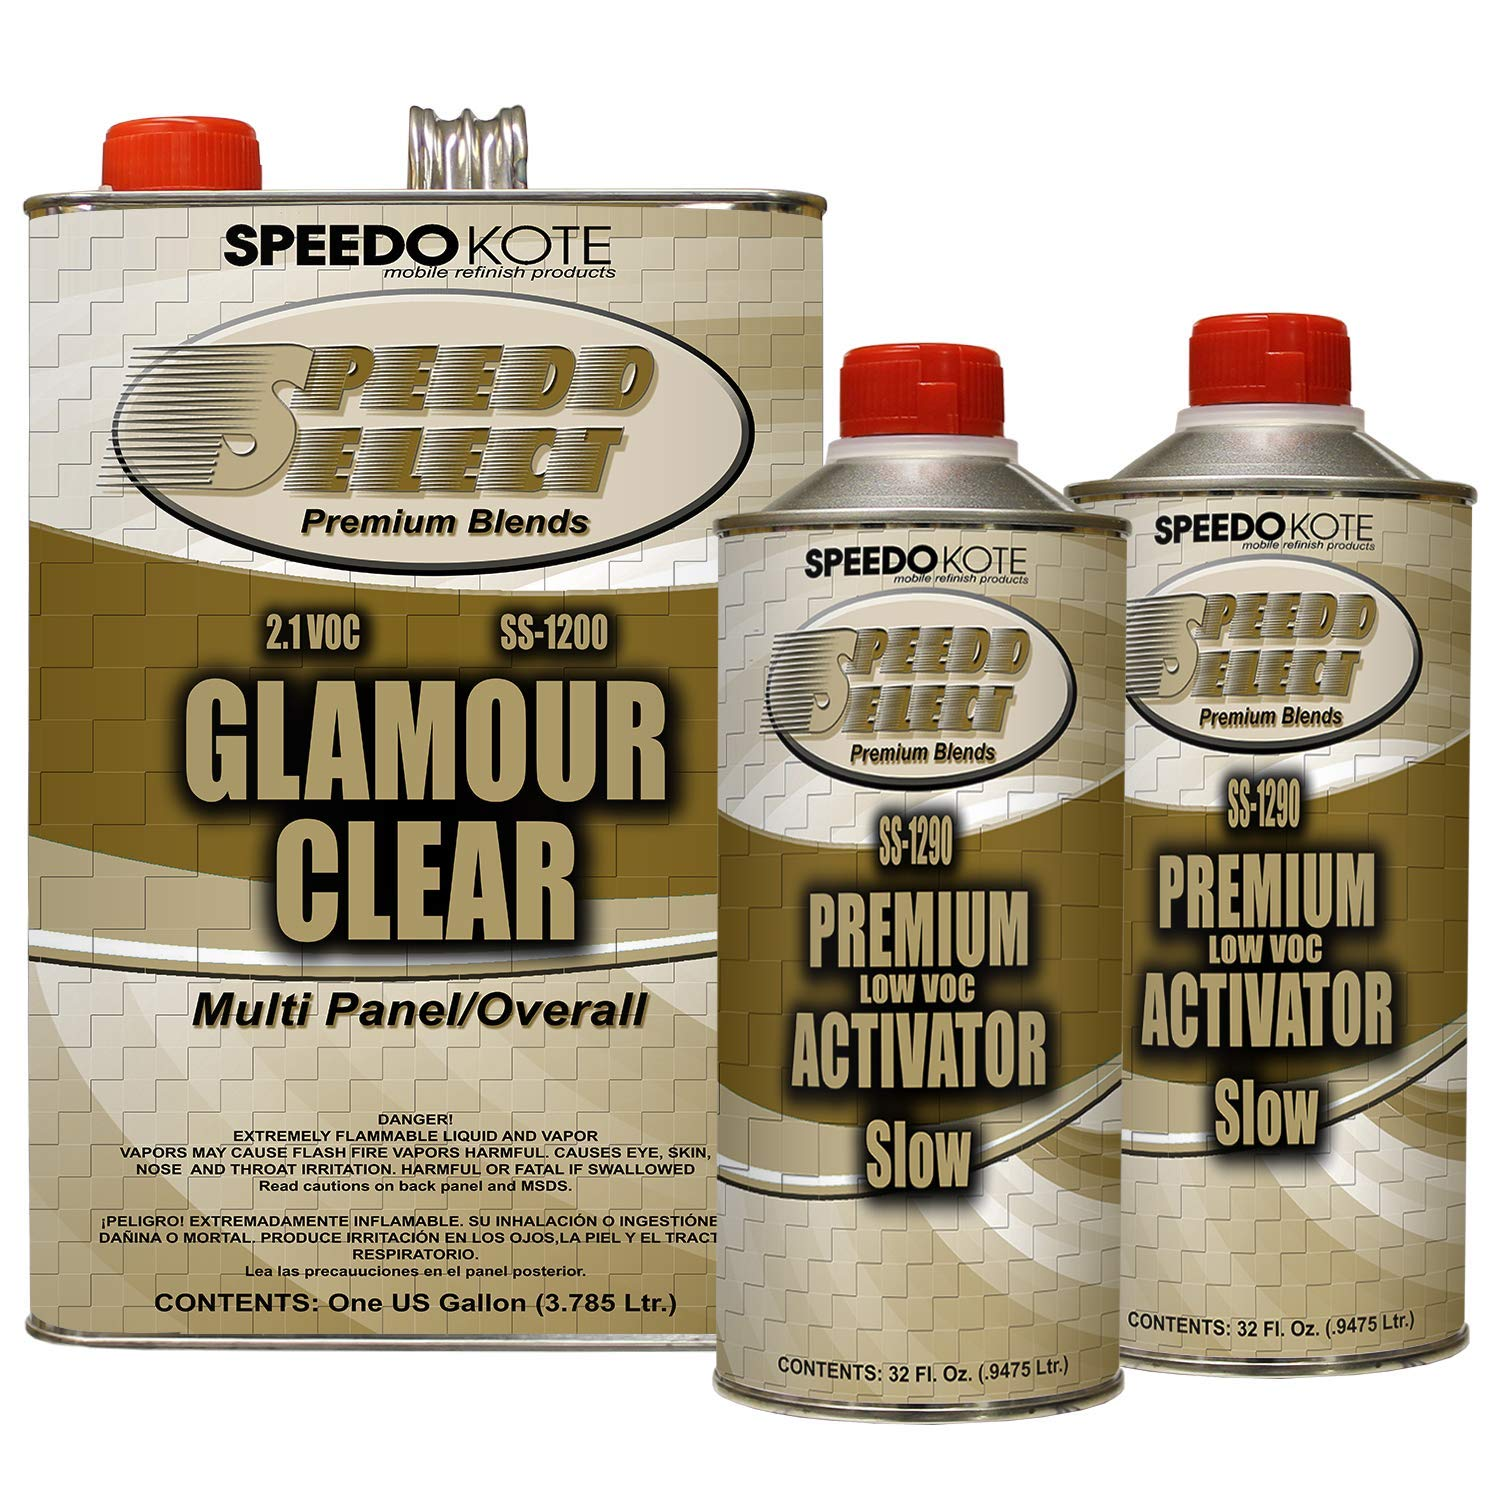 Speedokote SS-1200/90 - Ultra High Gloss with Superior DOI 2.1 voc Clear Coat, 2:1 Mix 6 quarts Slow Speed clearcoat Kit